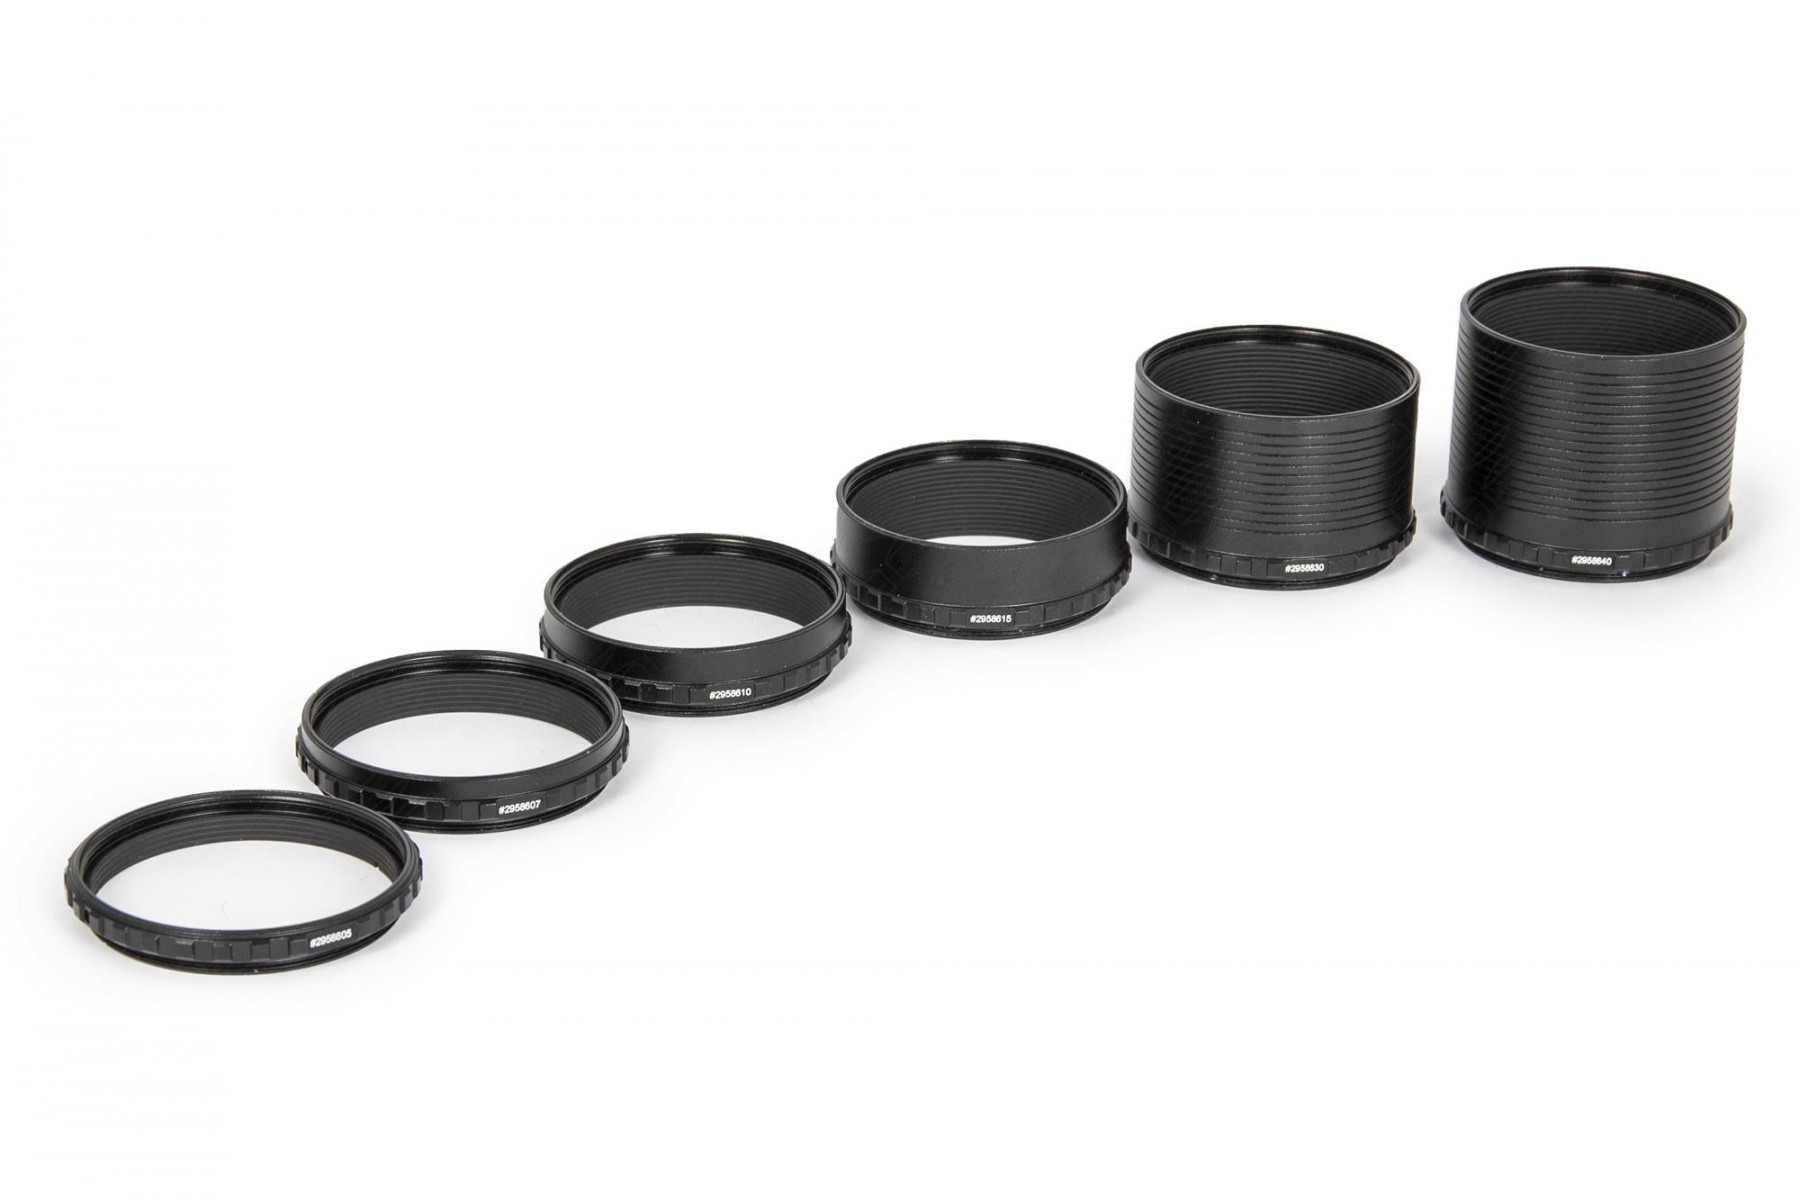 M48 Adjustment rings (5 mm, 7,5 mm, 10 mm, 15 mm, 30mm, 40 mm)